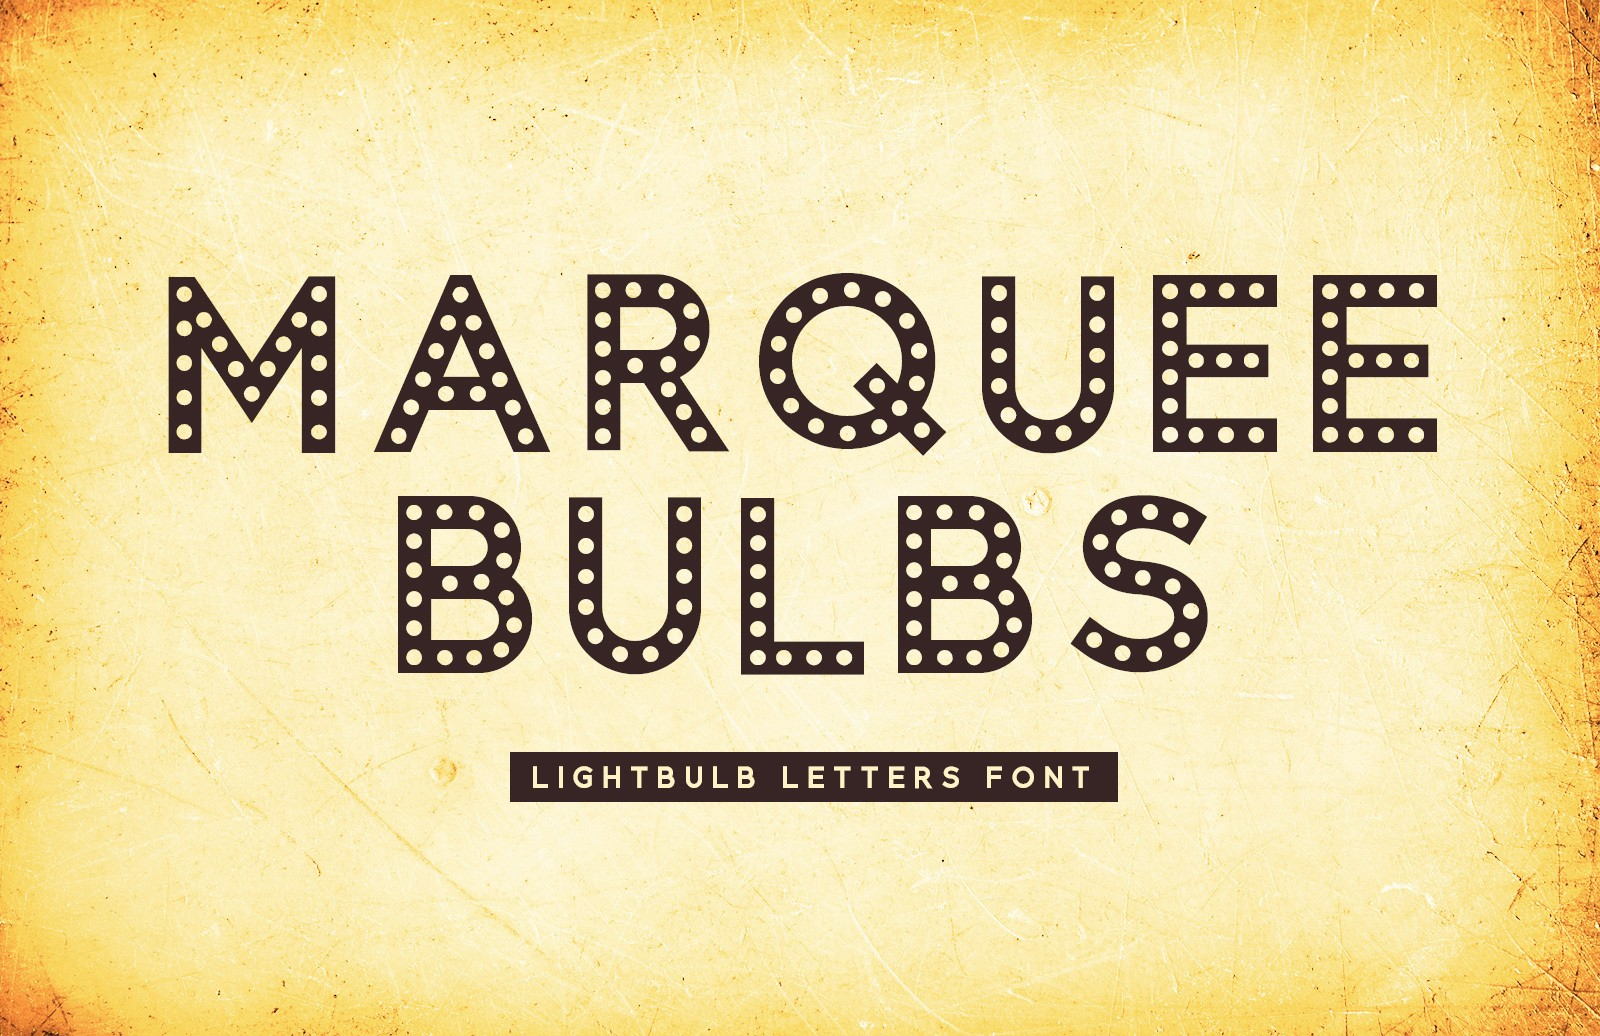 Marquee Bulbs - Lightbulb Letters Font